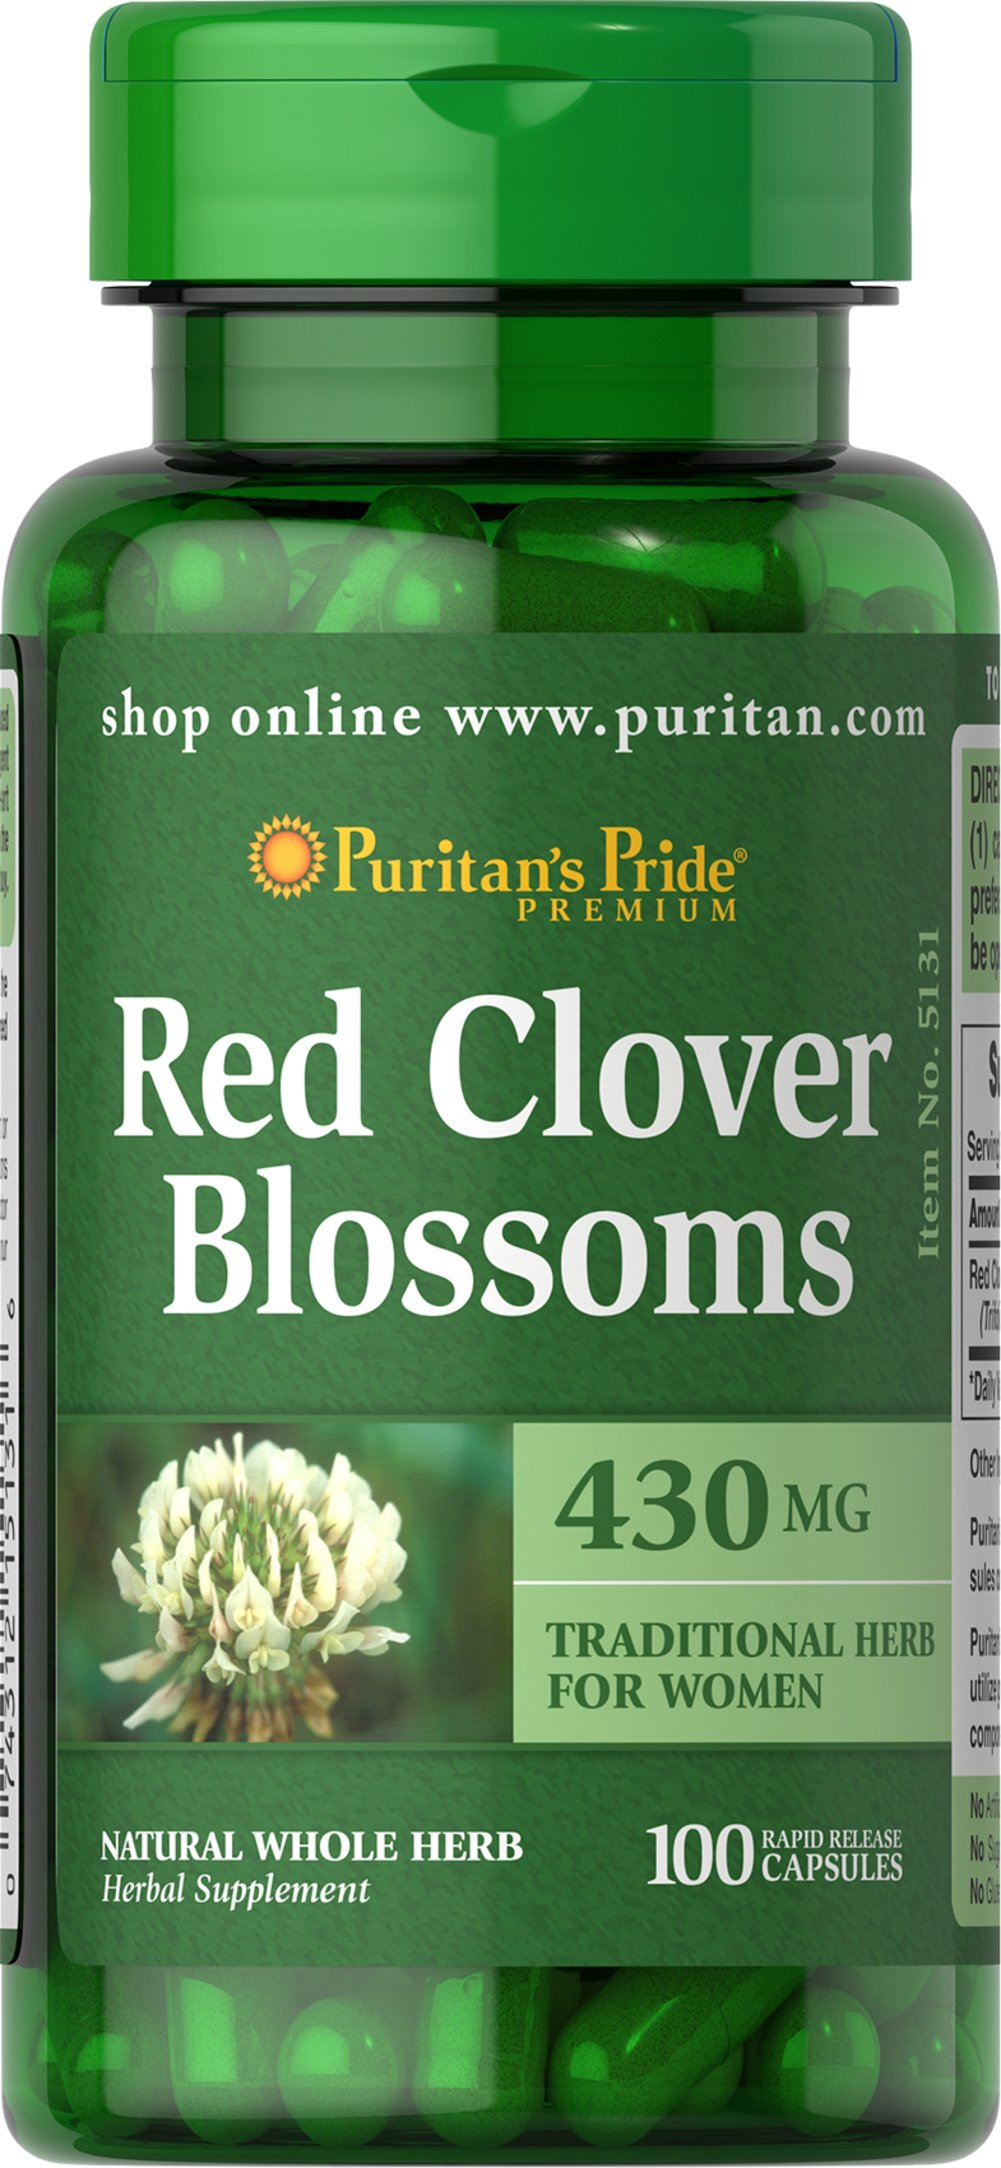 Red Clover Blossoms 430 mg <p>Red Clover is a natural source of plant nutrients that help promote well-being for women.** Red Clover Blossoms help support the physical changes which occur in a woman's body over time.**</p> 100 Capsules 430 mg $9.29